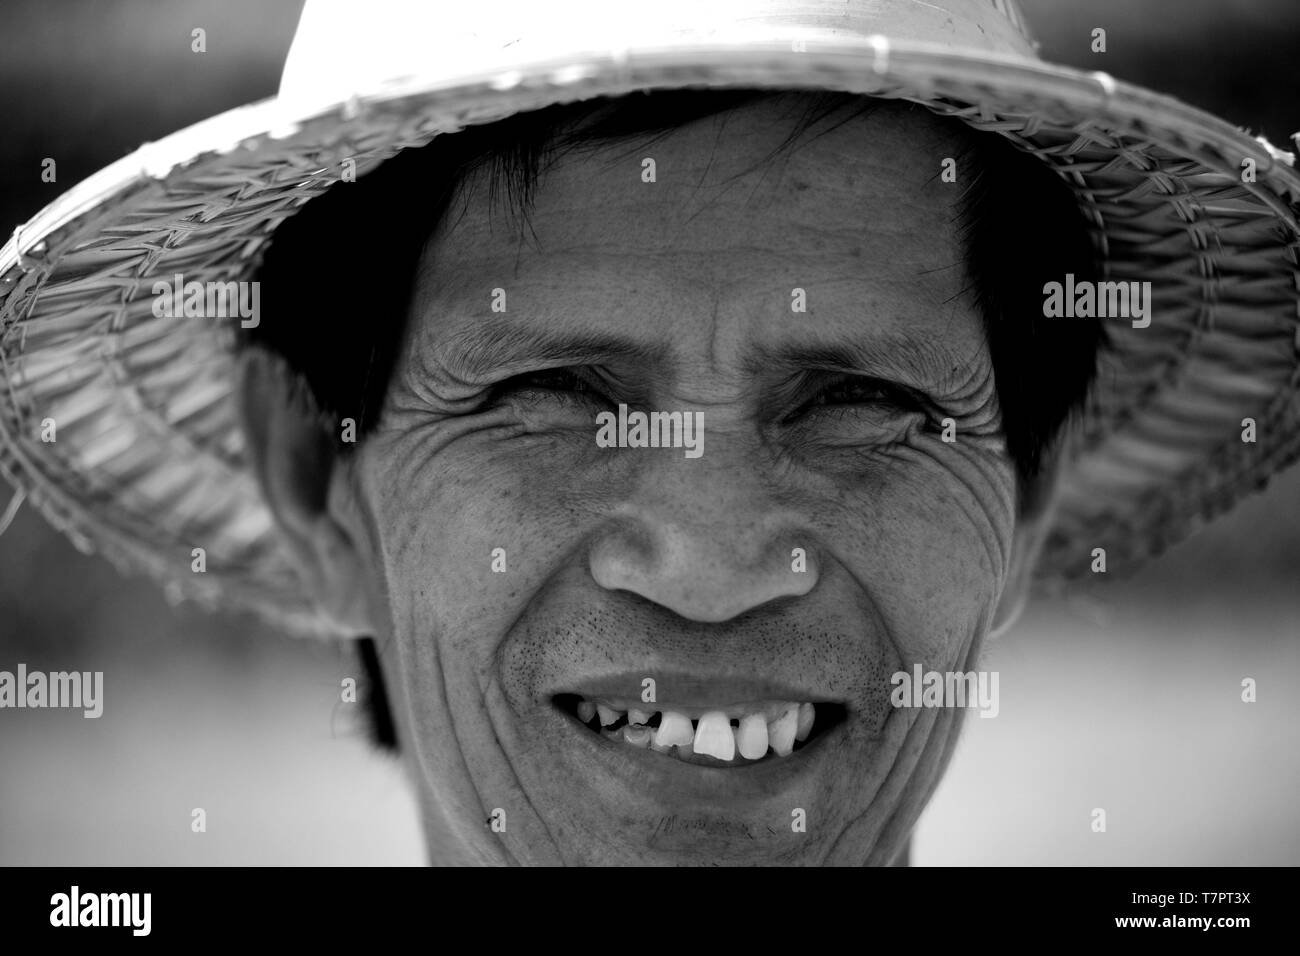 Thailand, Thai rice, worker portrait in paddy fields north - Stock Image